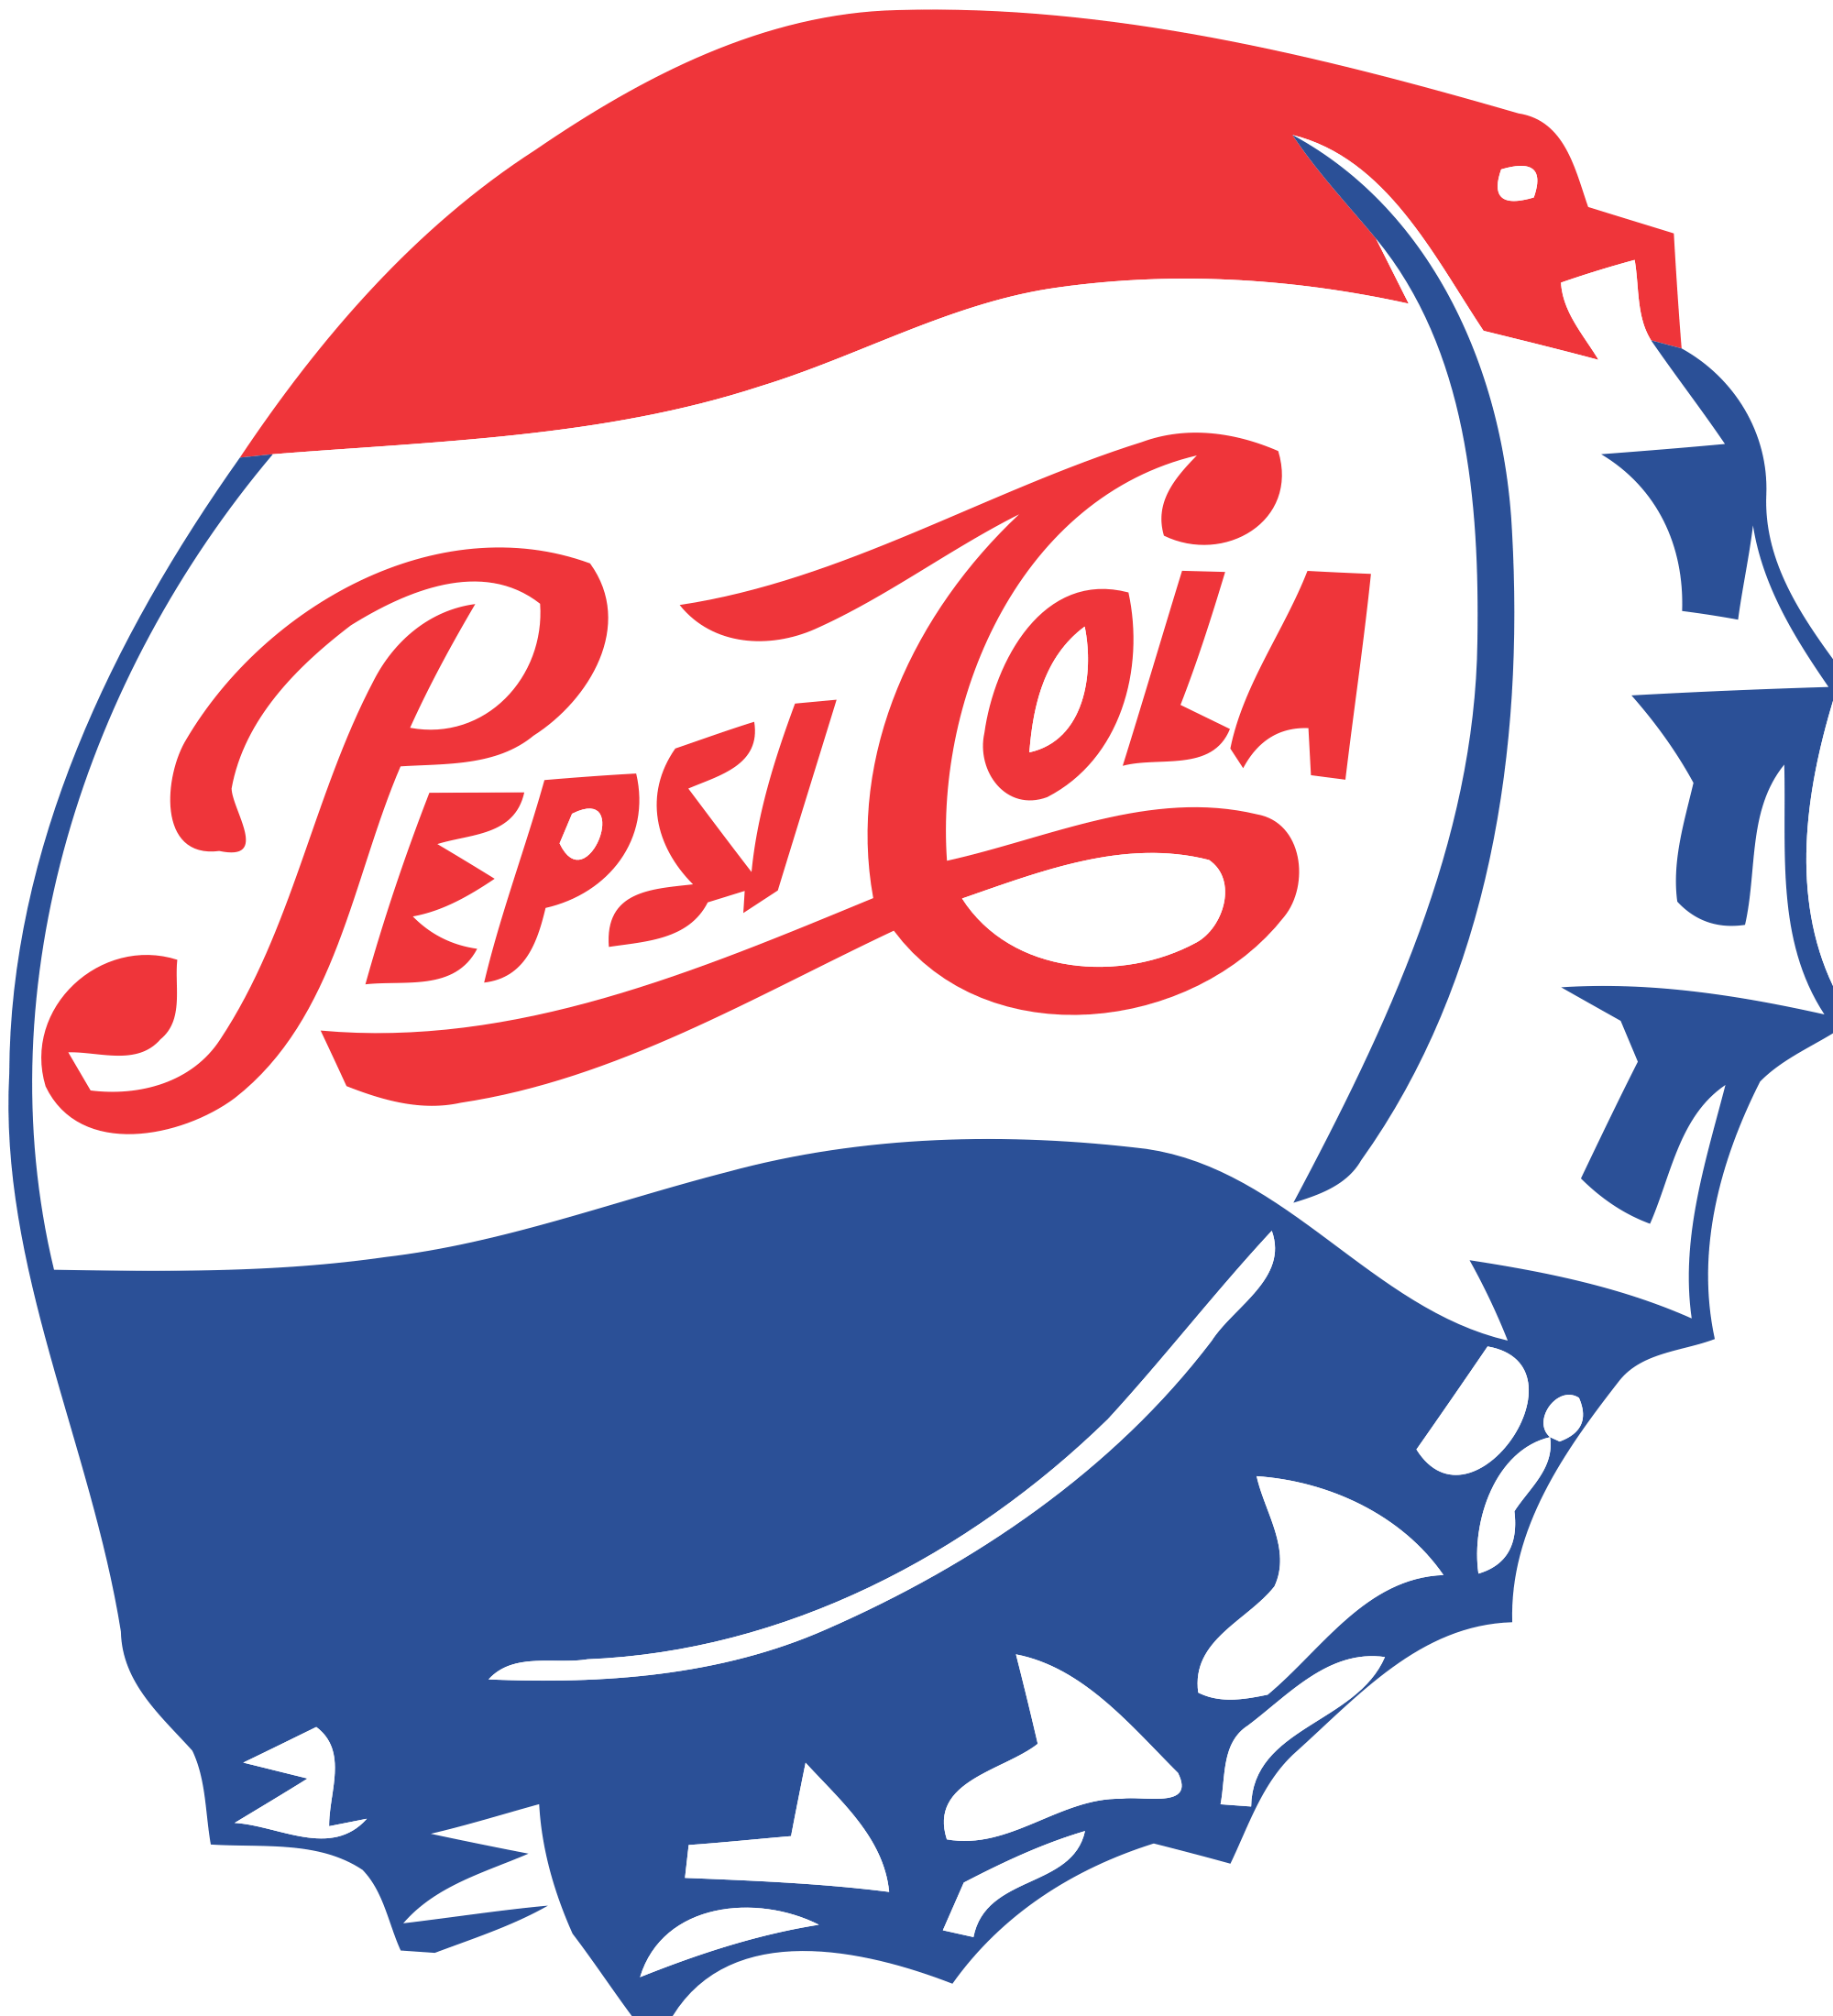 Pepsi Clipart · food · pepsi